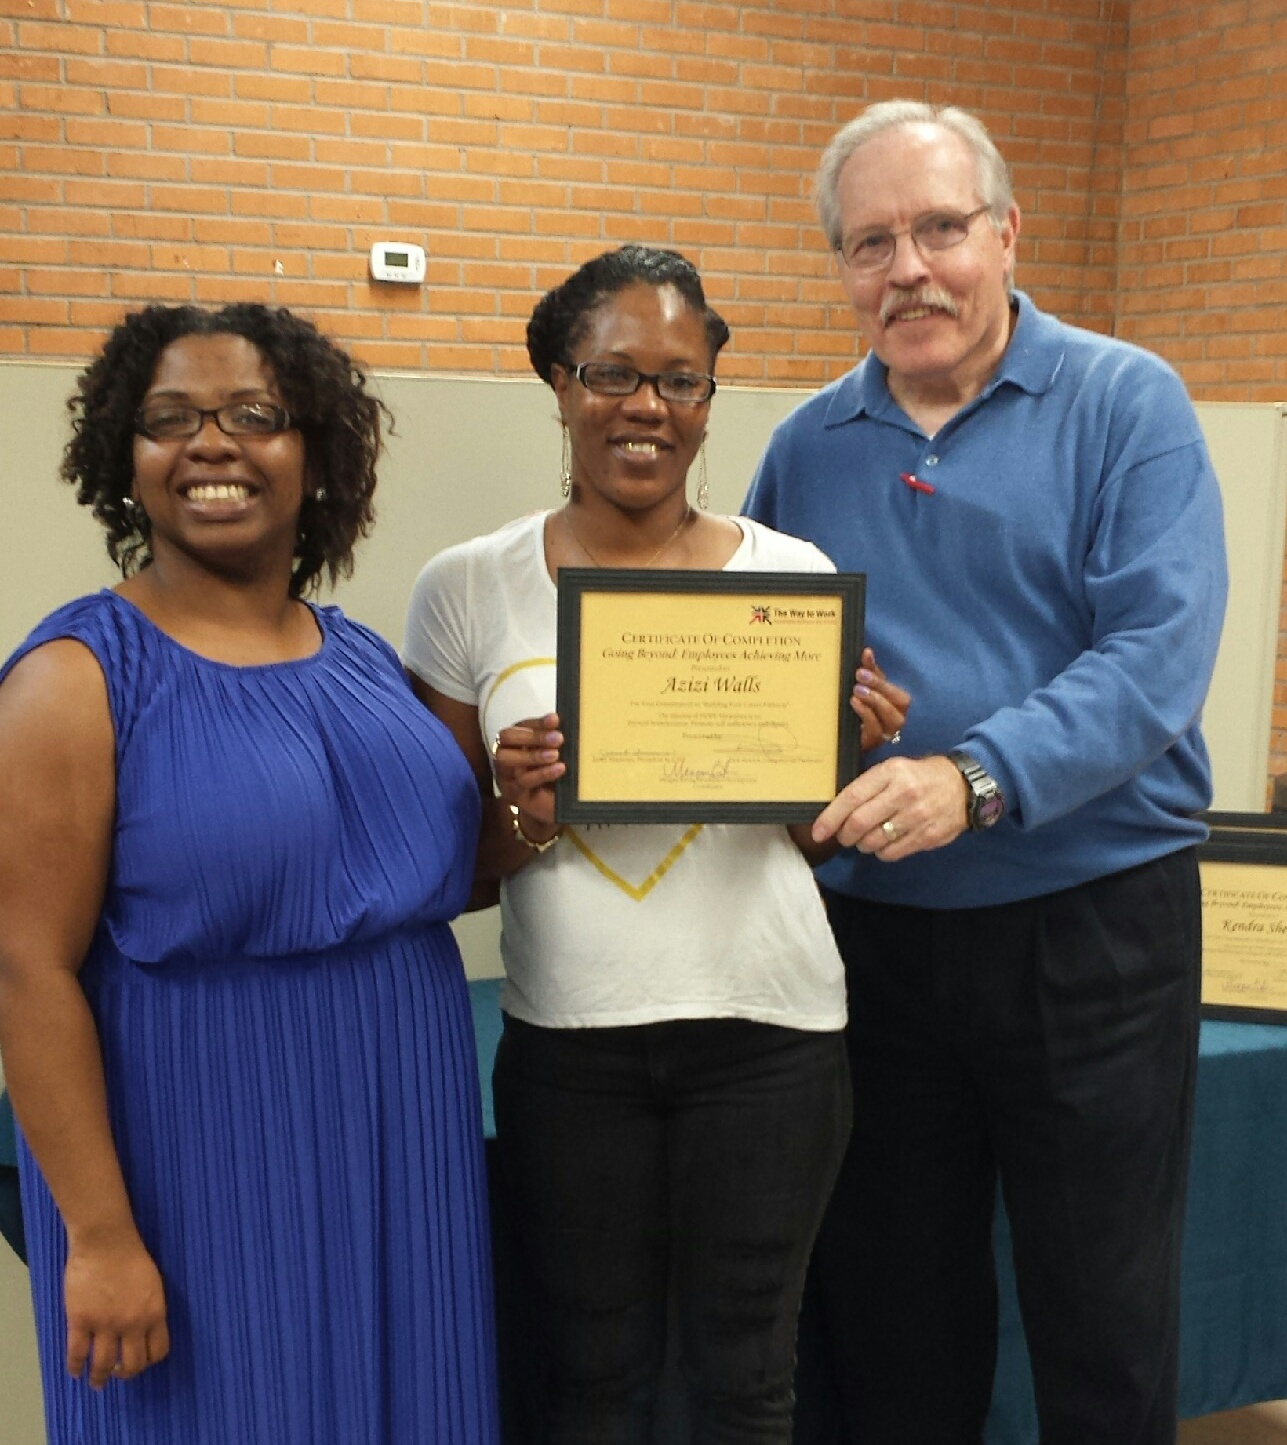 Aziz Walls, center, recently graduated from the Going Beyond program. She is pictured here with Megan Belvin, HOPE Workforce Development Coordinator, left, and Dick Stonich, HOPE Family Services Financial Trainer.